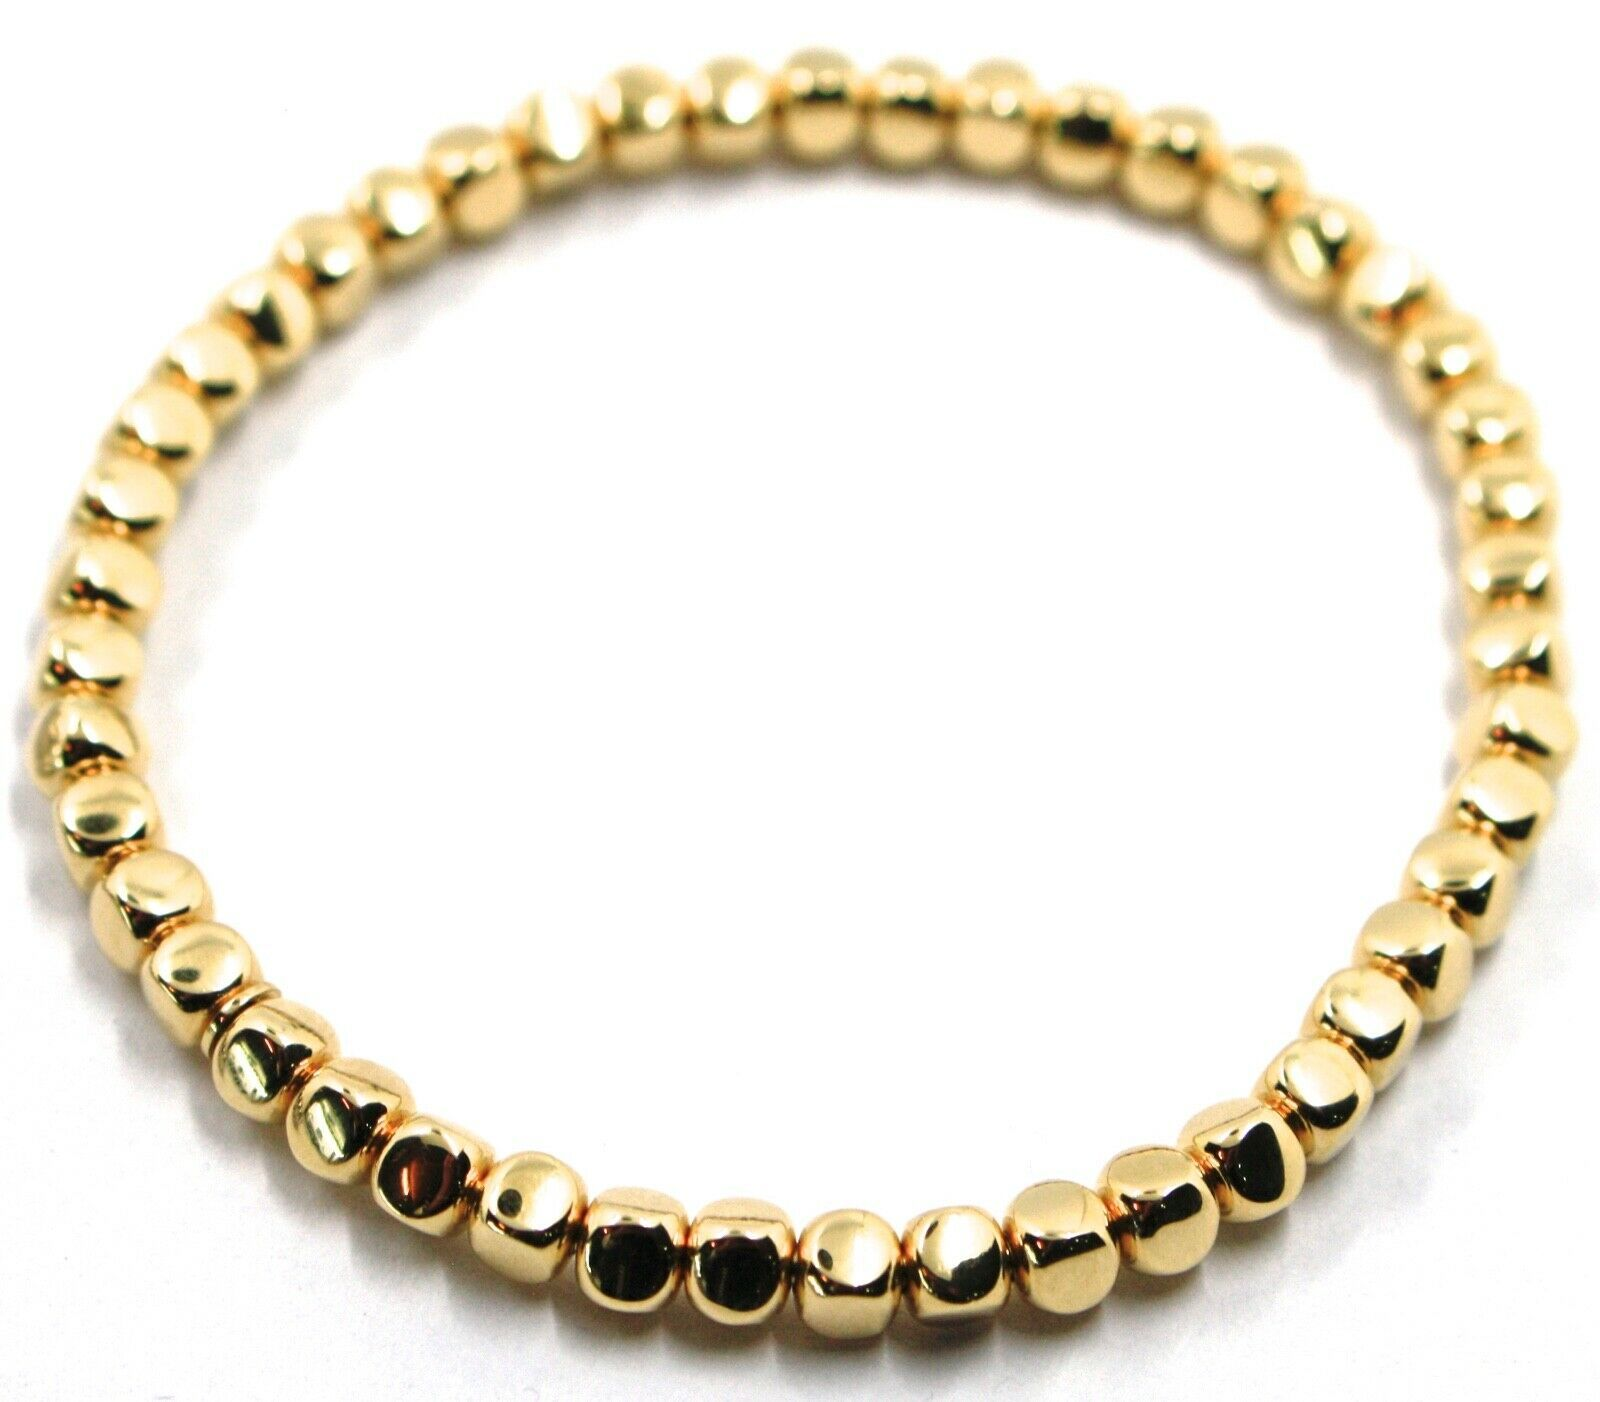 "Primary image for SOLID 18K YELLOW GOLD ELASTIC BRACELET, CUBES DIAMETER 4 MM 0.16"", MADE IN ITALY"